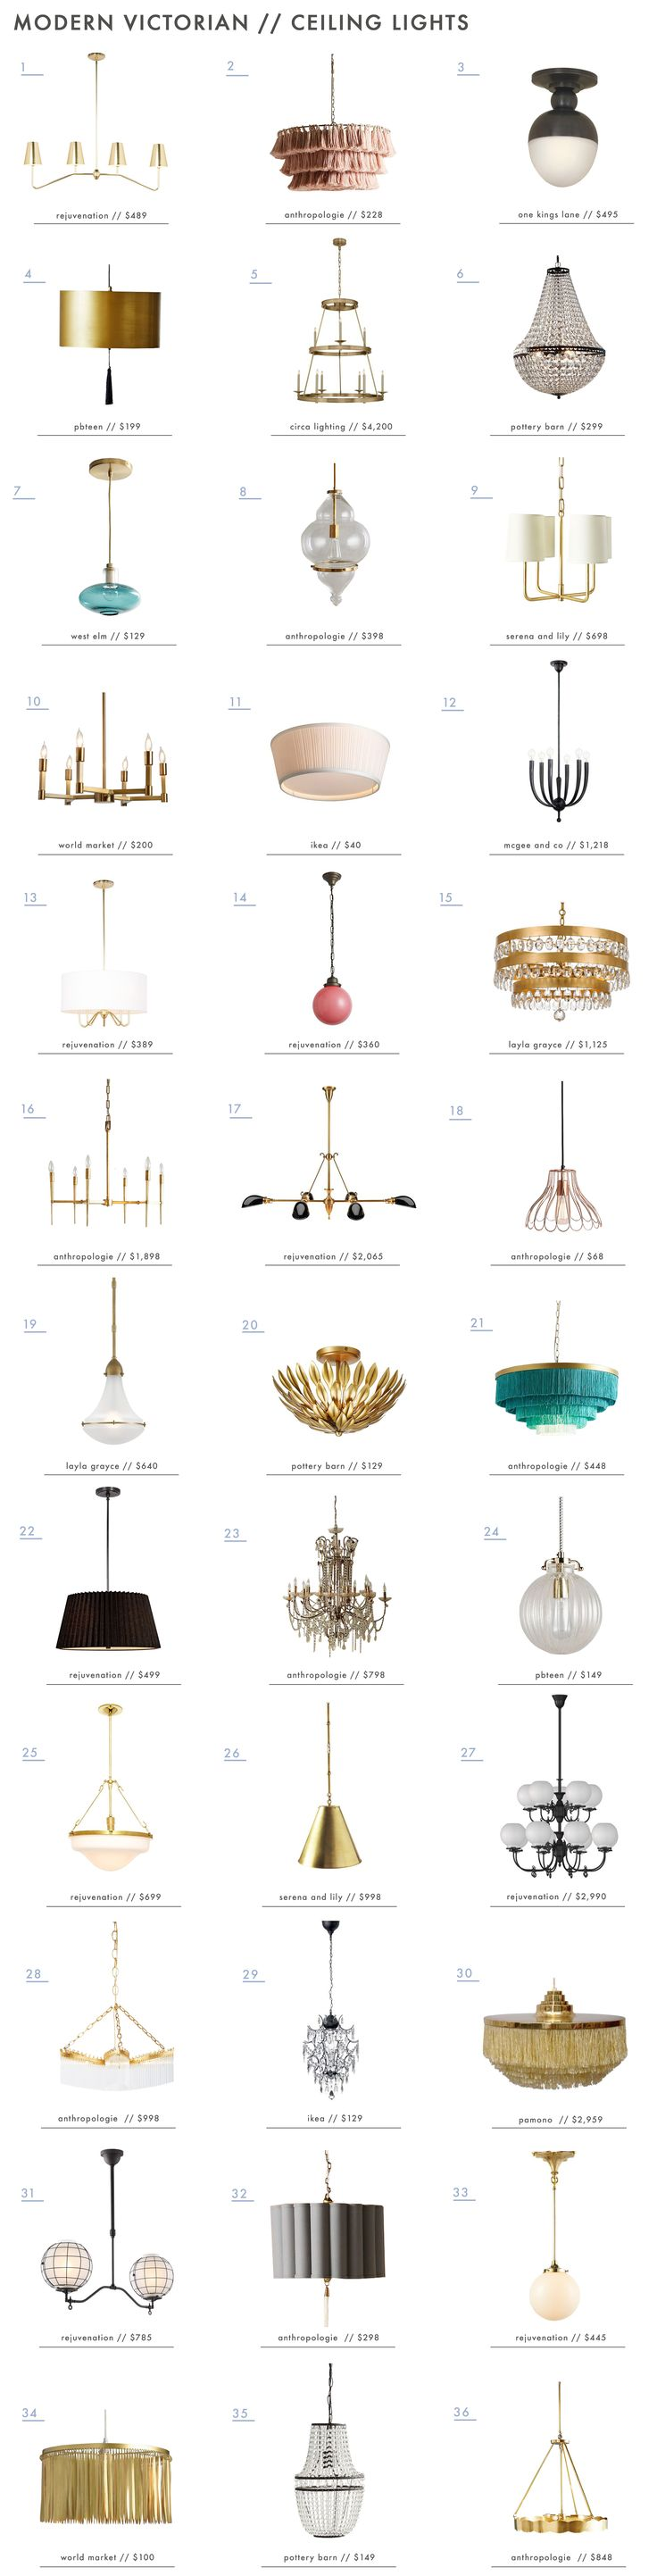 Achieving The Modern Victorian Style Lighting